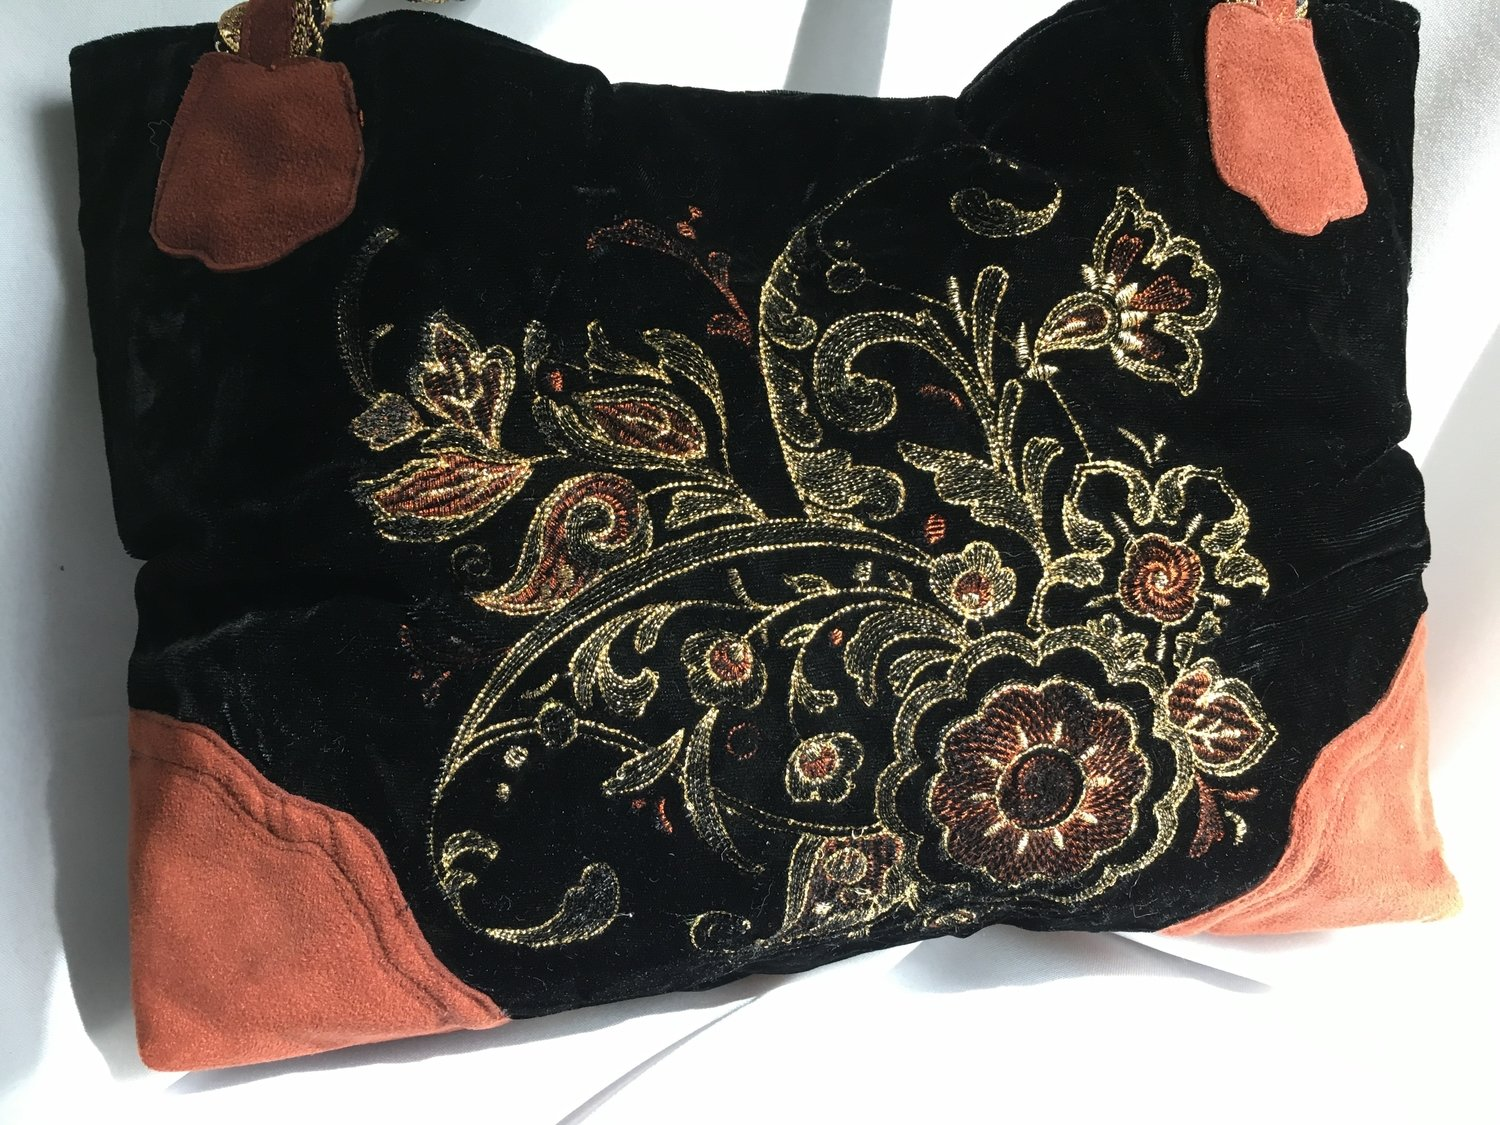 Gold Silver Copper Embroidery on Black Velvet Bag